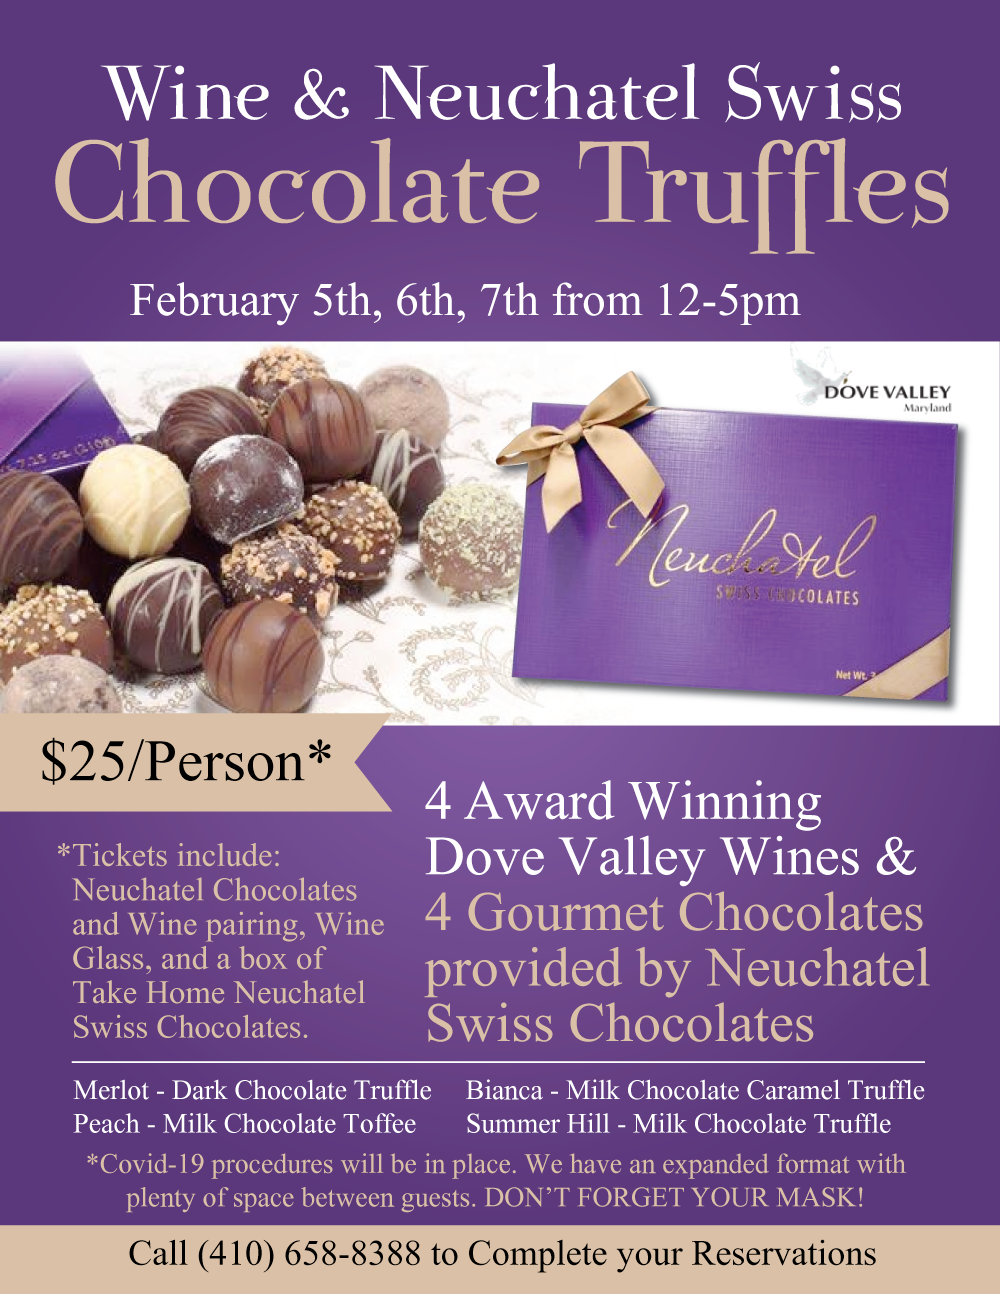 WINE & CHOCOLATE TRUFFLES